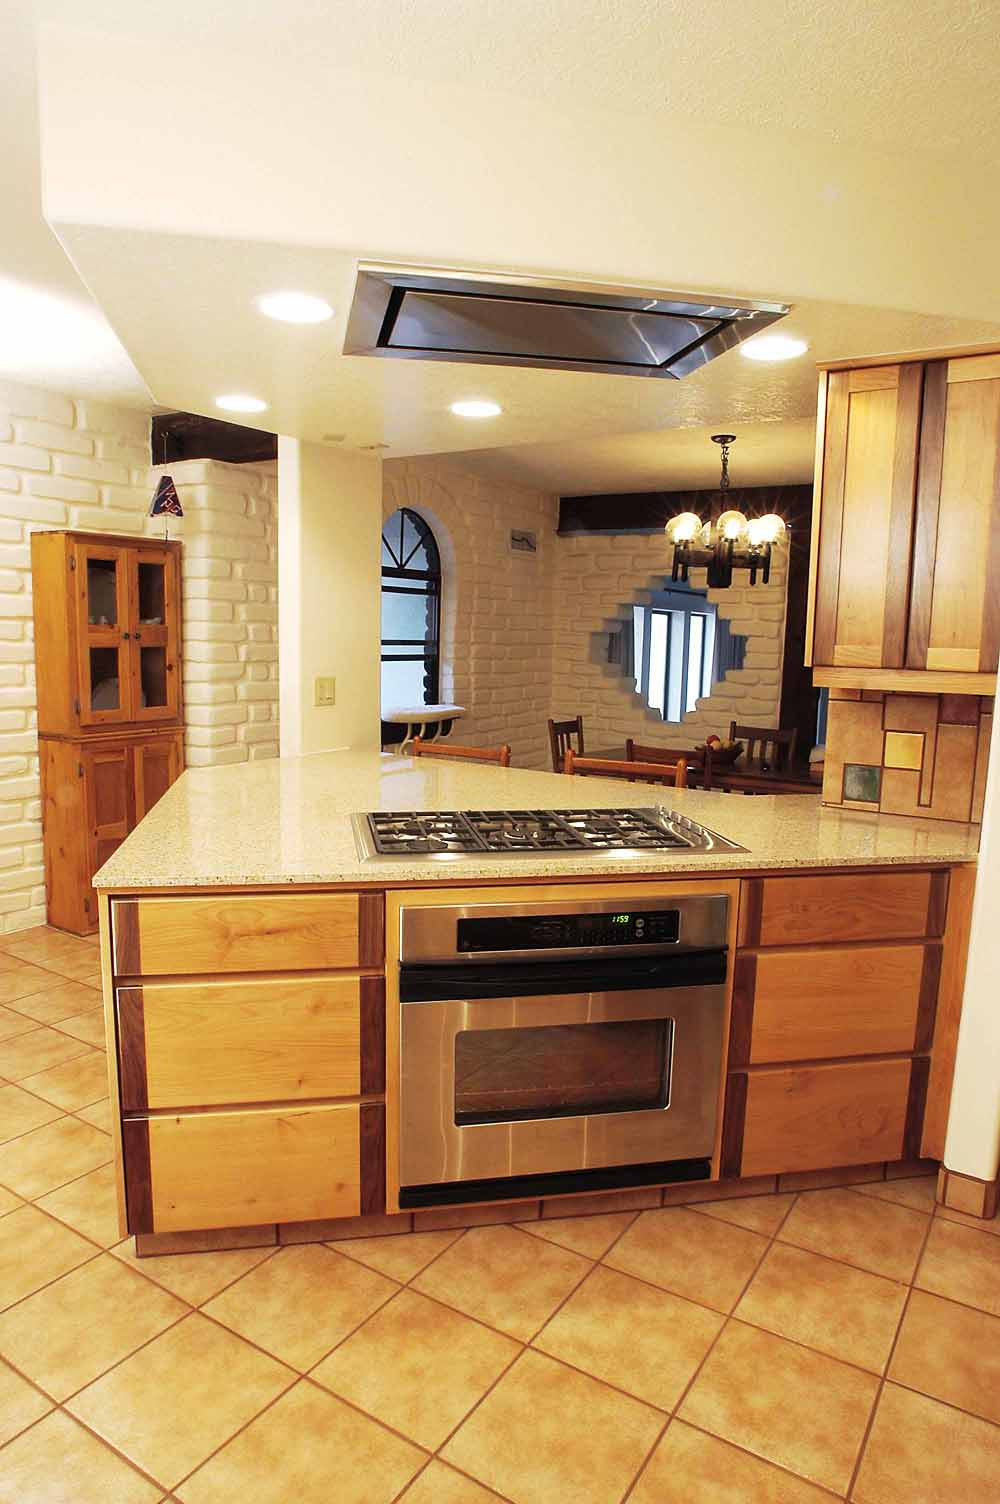 flush mount vent hood hood doubtful view kitchen bath whole house remodeling arch design